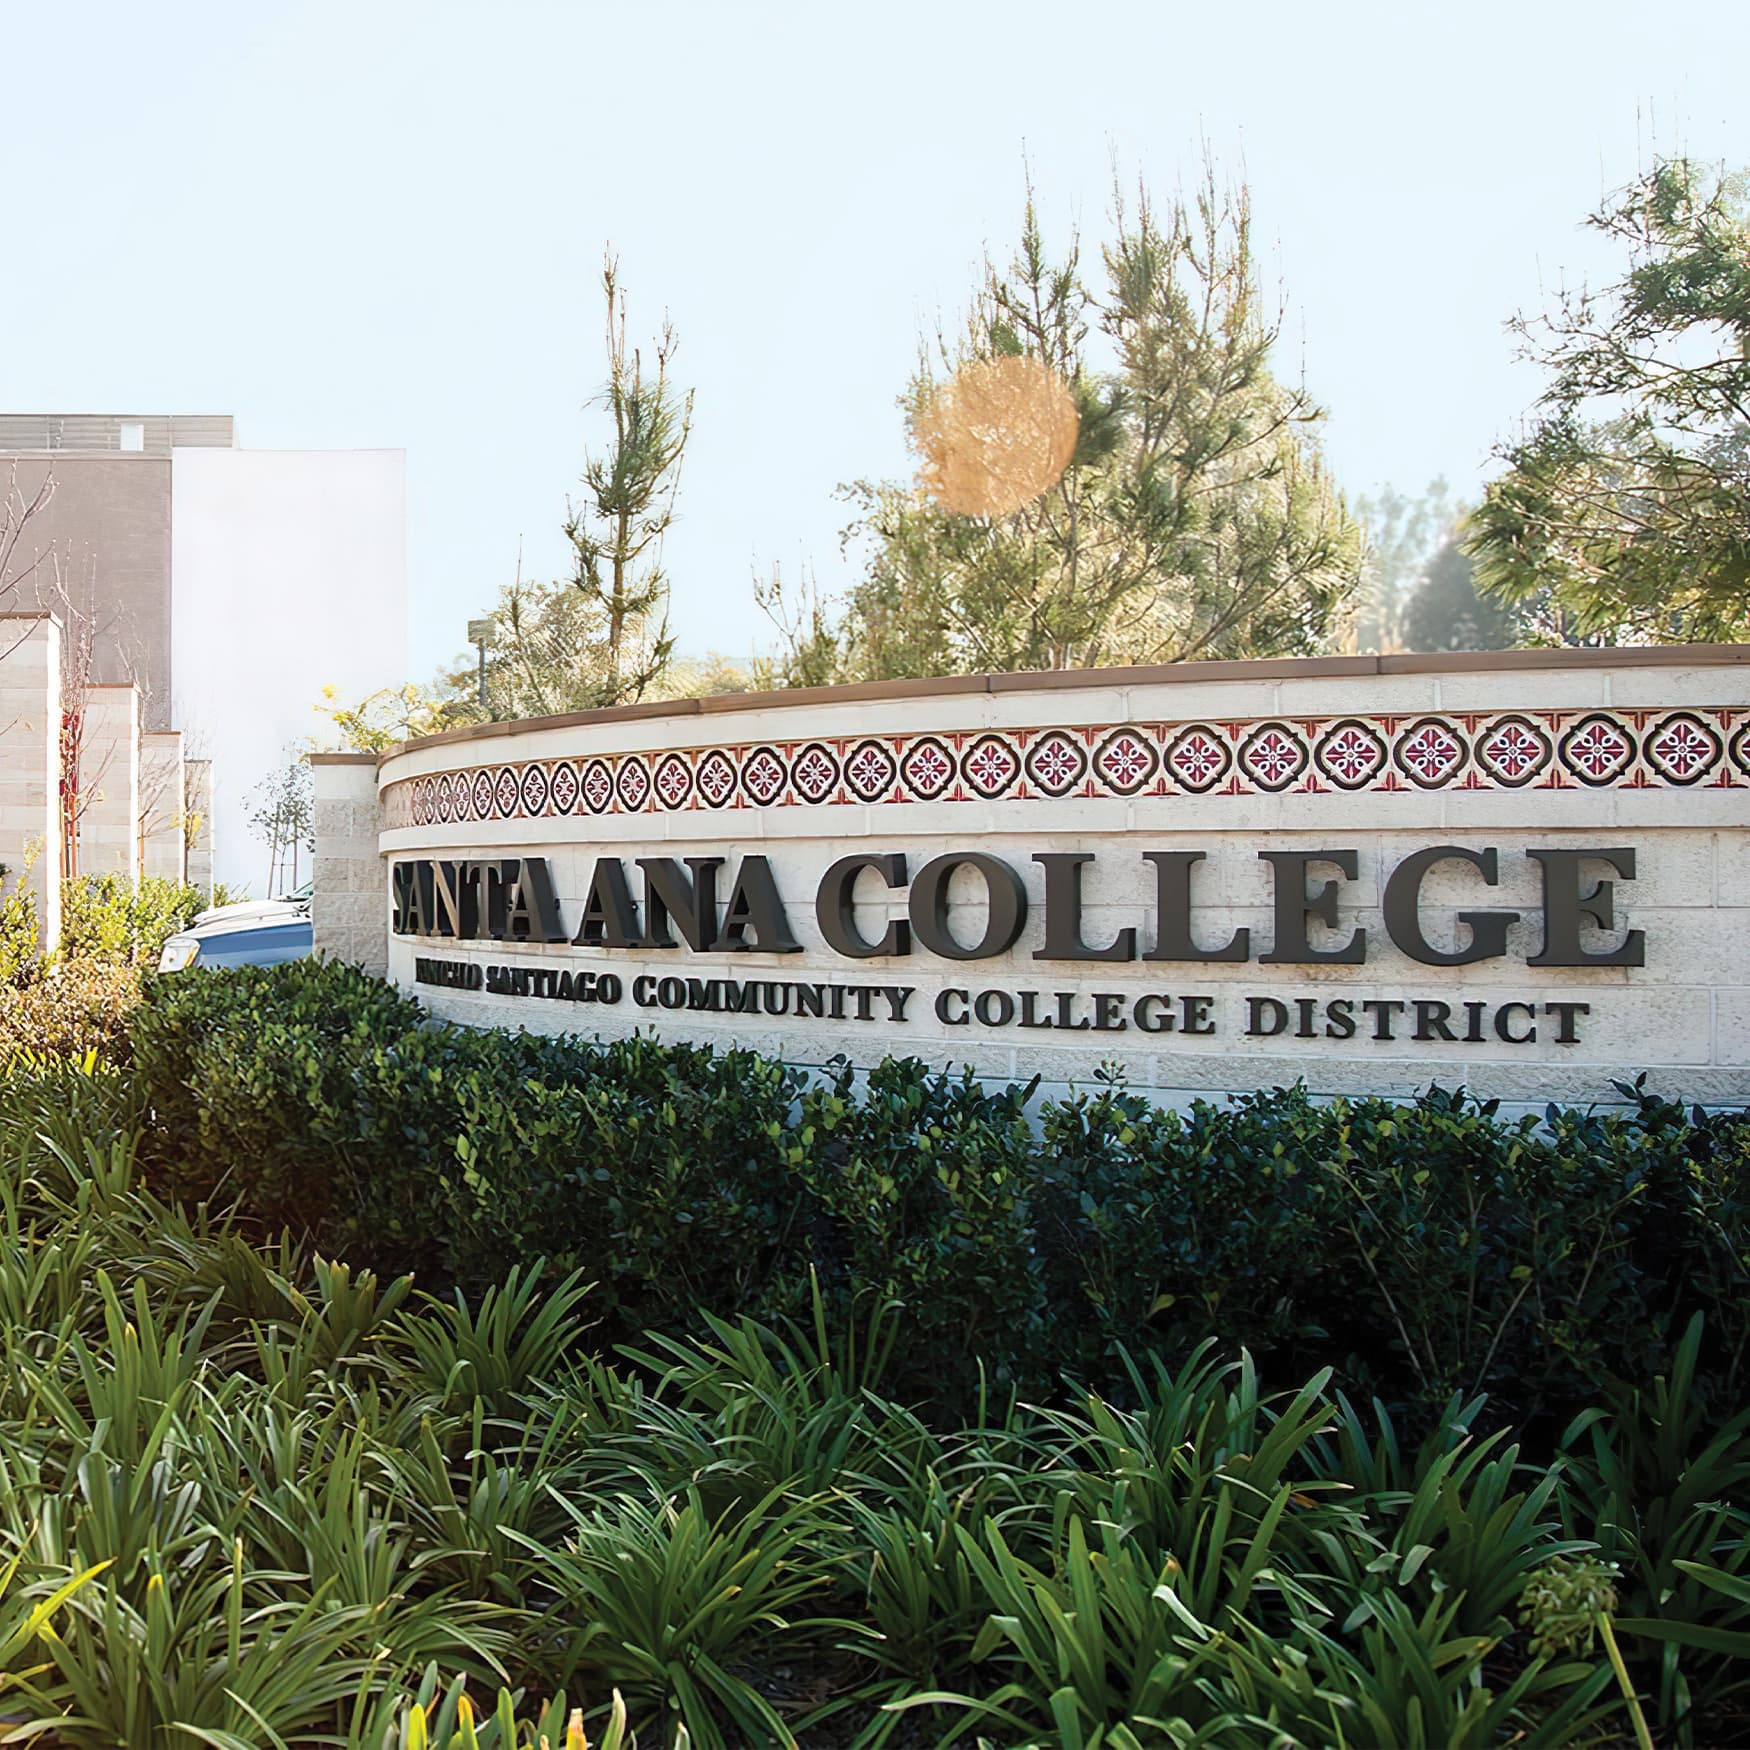 Wall with tiled accents featuring Santa Ana College dimensional letter identity